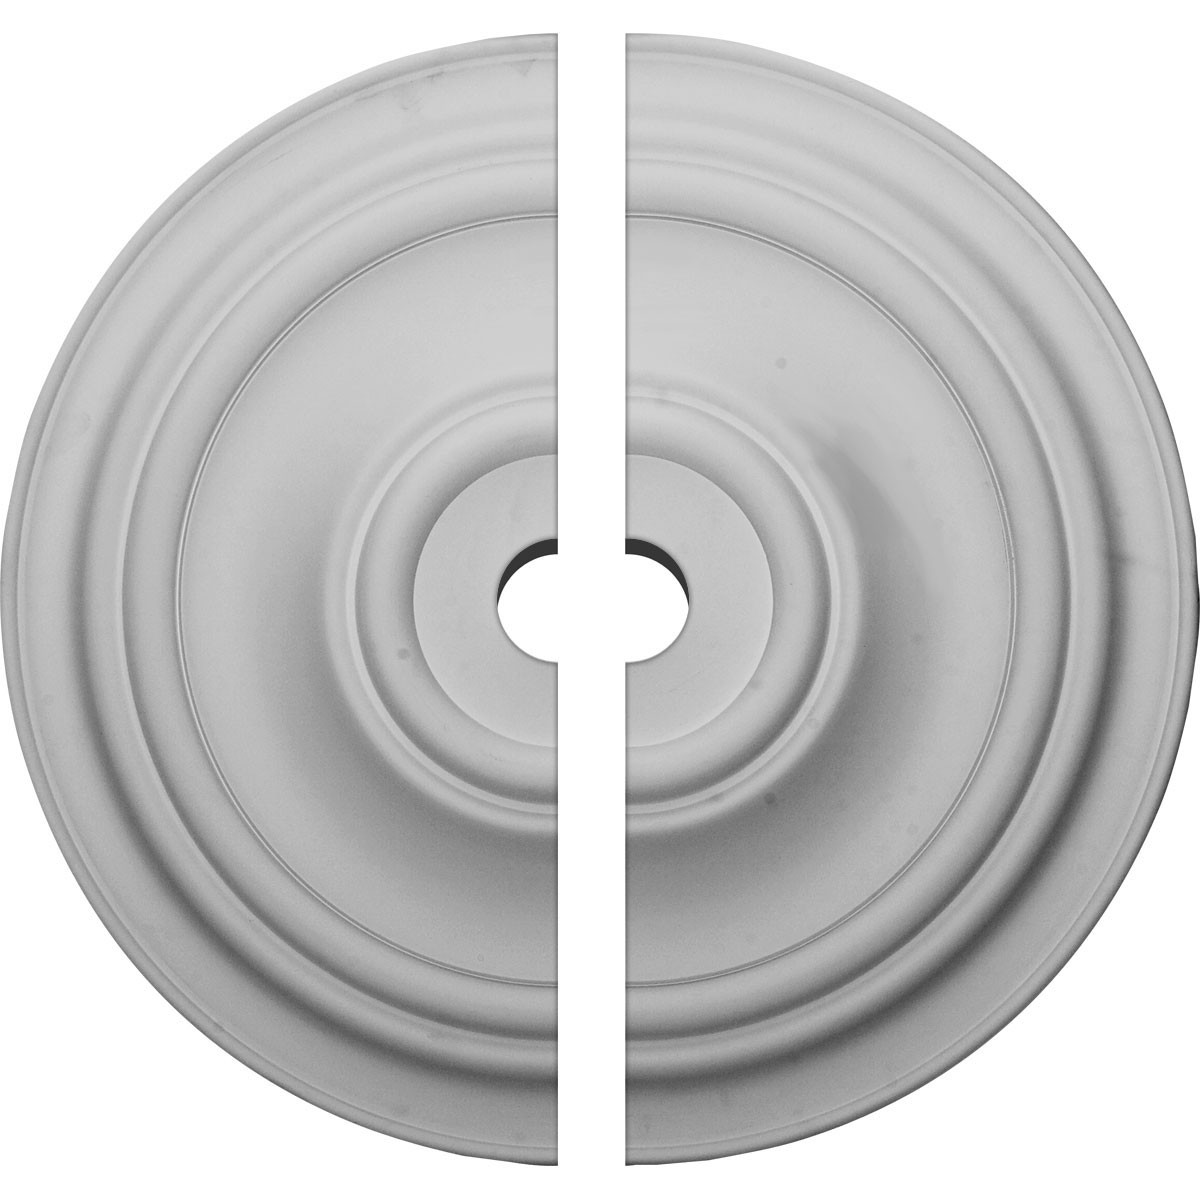 """EM-CM31TR2-03500 - 31 1/2""""OD x 3 1/2""""ID x 2 1/2""""P Traditional Ceiling Medallion, Two Piece (Fits Canopies up to 8 1/4"""")"""